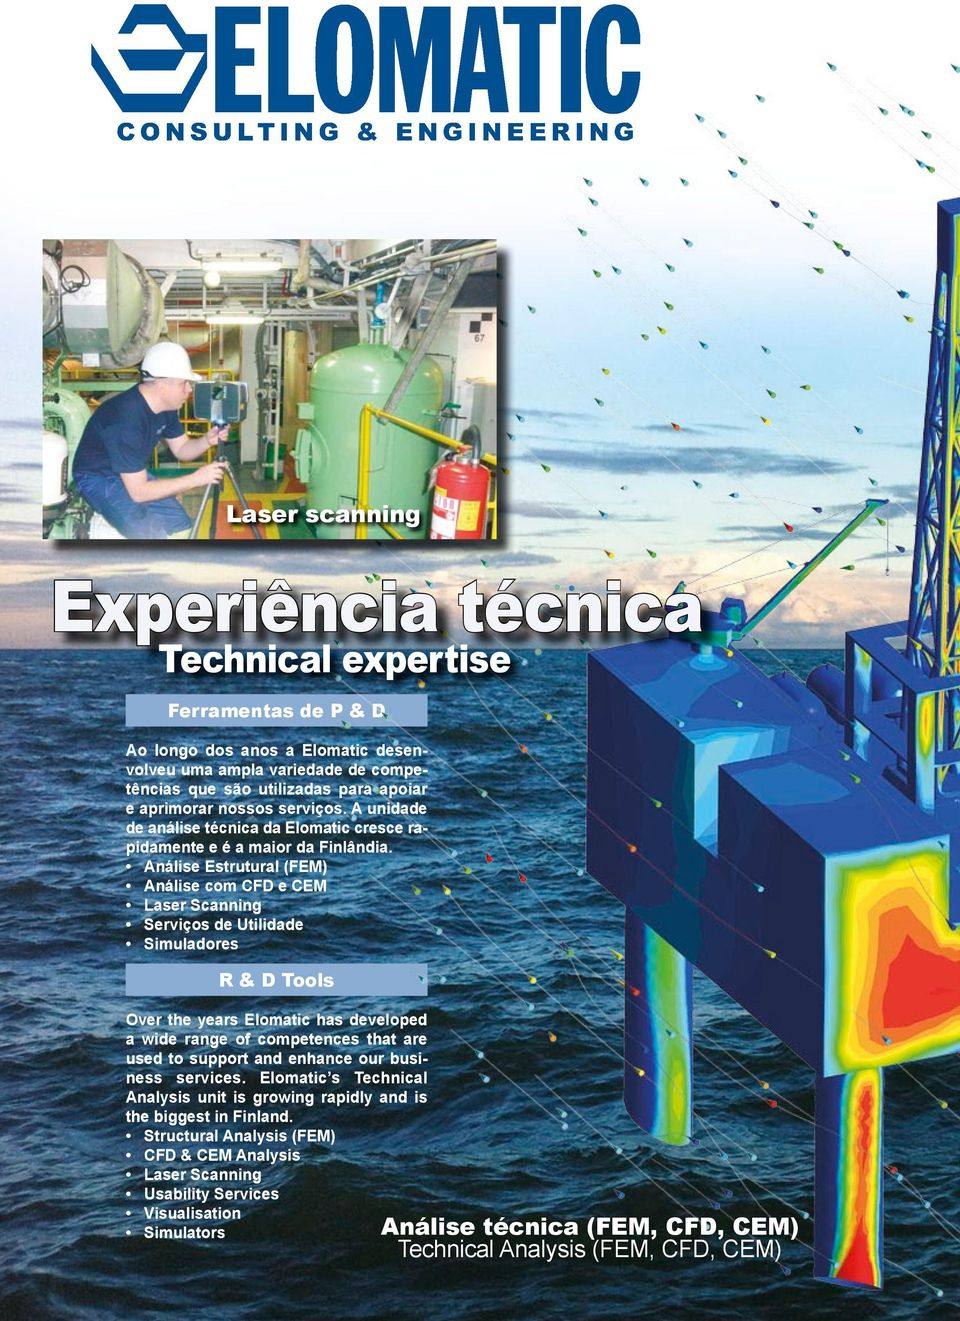 Análise Estrutural (FEM) Análise com CFD e CEM Laser Scanning Serviços de Utilidade Simuladores R & D Tools Over the years Elomatic has developed a wide range of competences that are used to